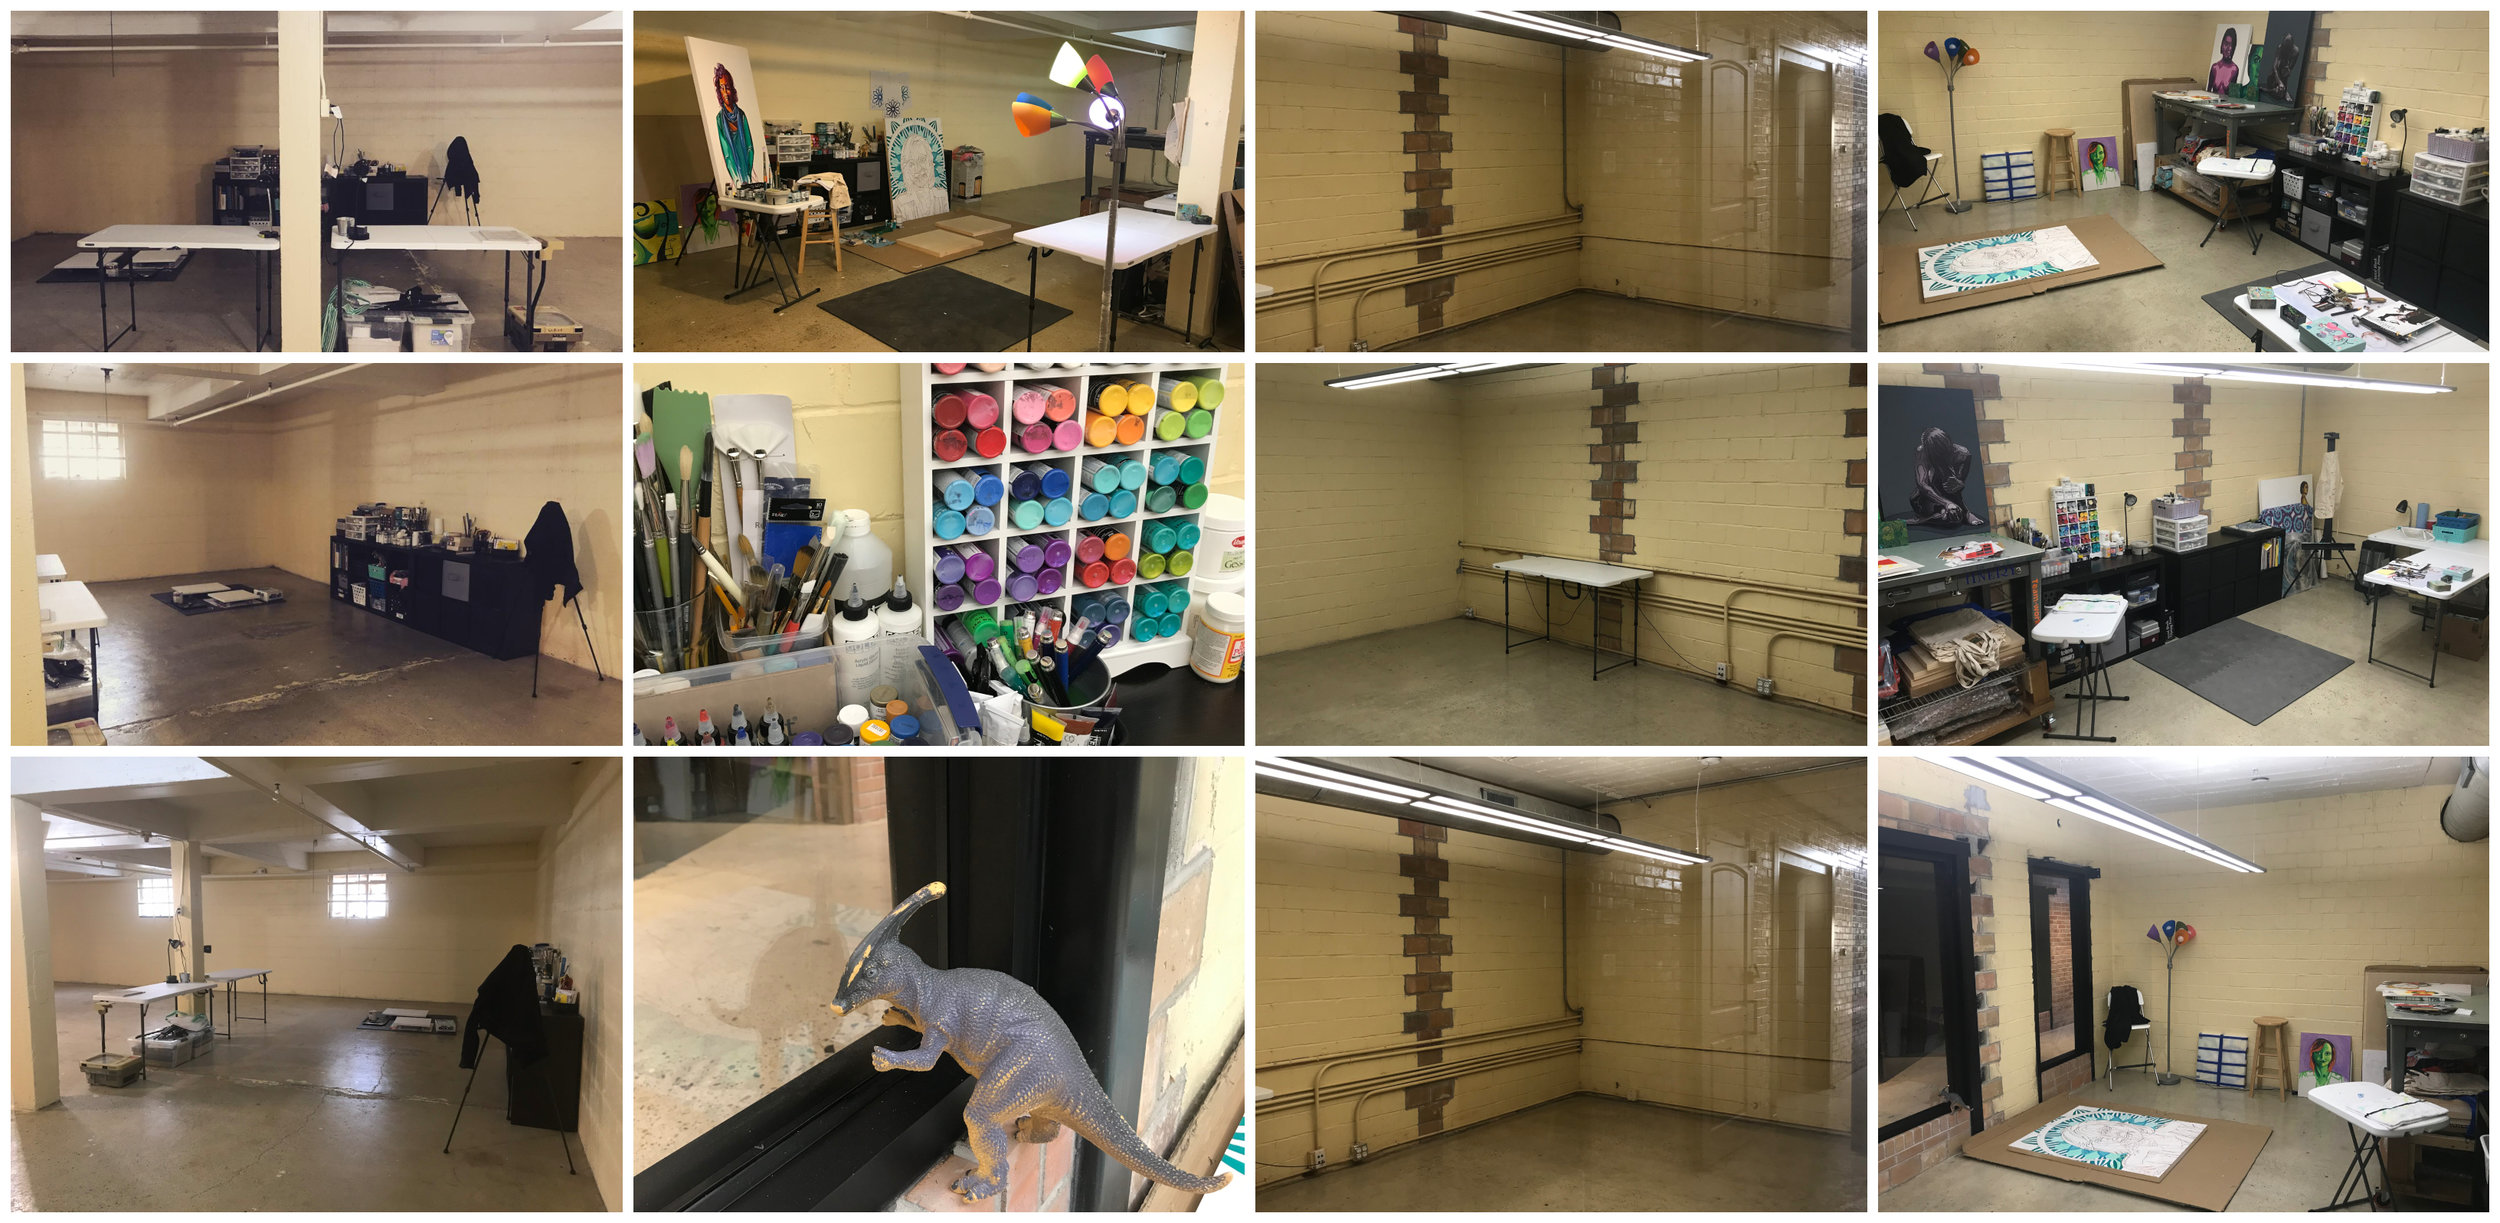 A studio evolution(top to bottom, then left to right): the 3 left photos are from when I first moved in to the basement.  Then I filled it up, even if it was too cold to work in.  Finally, Francis the Dinosaur helped me move in to the new studio upstairs, in which I promptly made a mess.